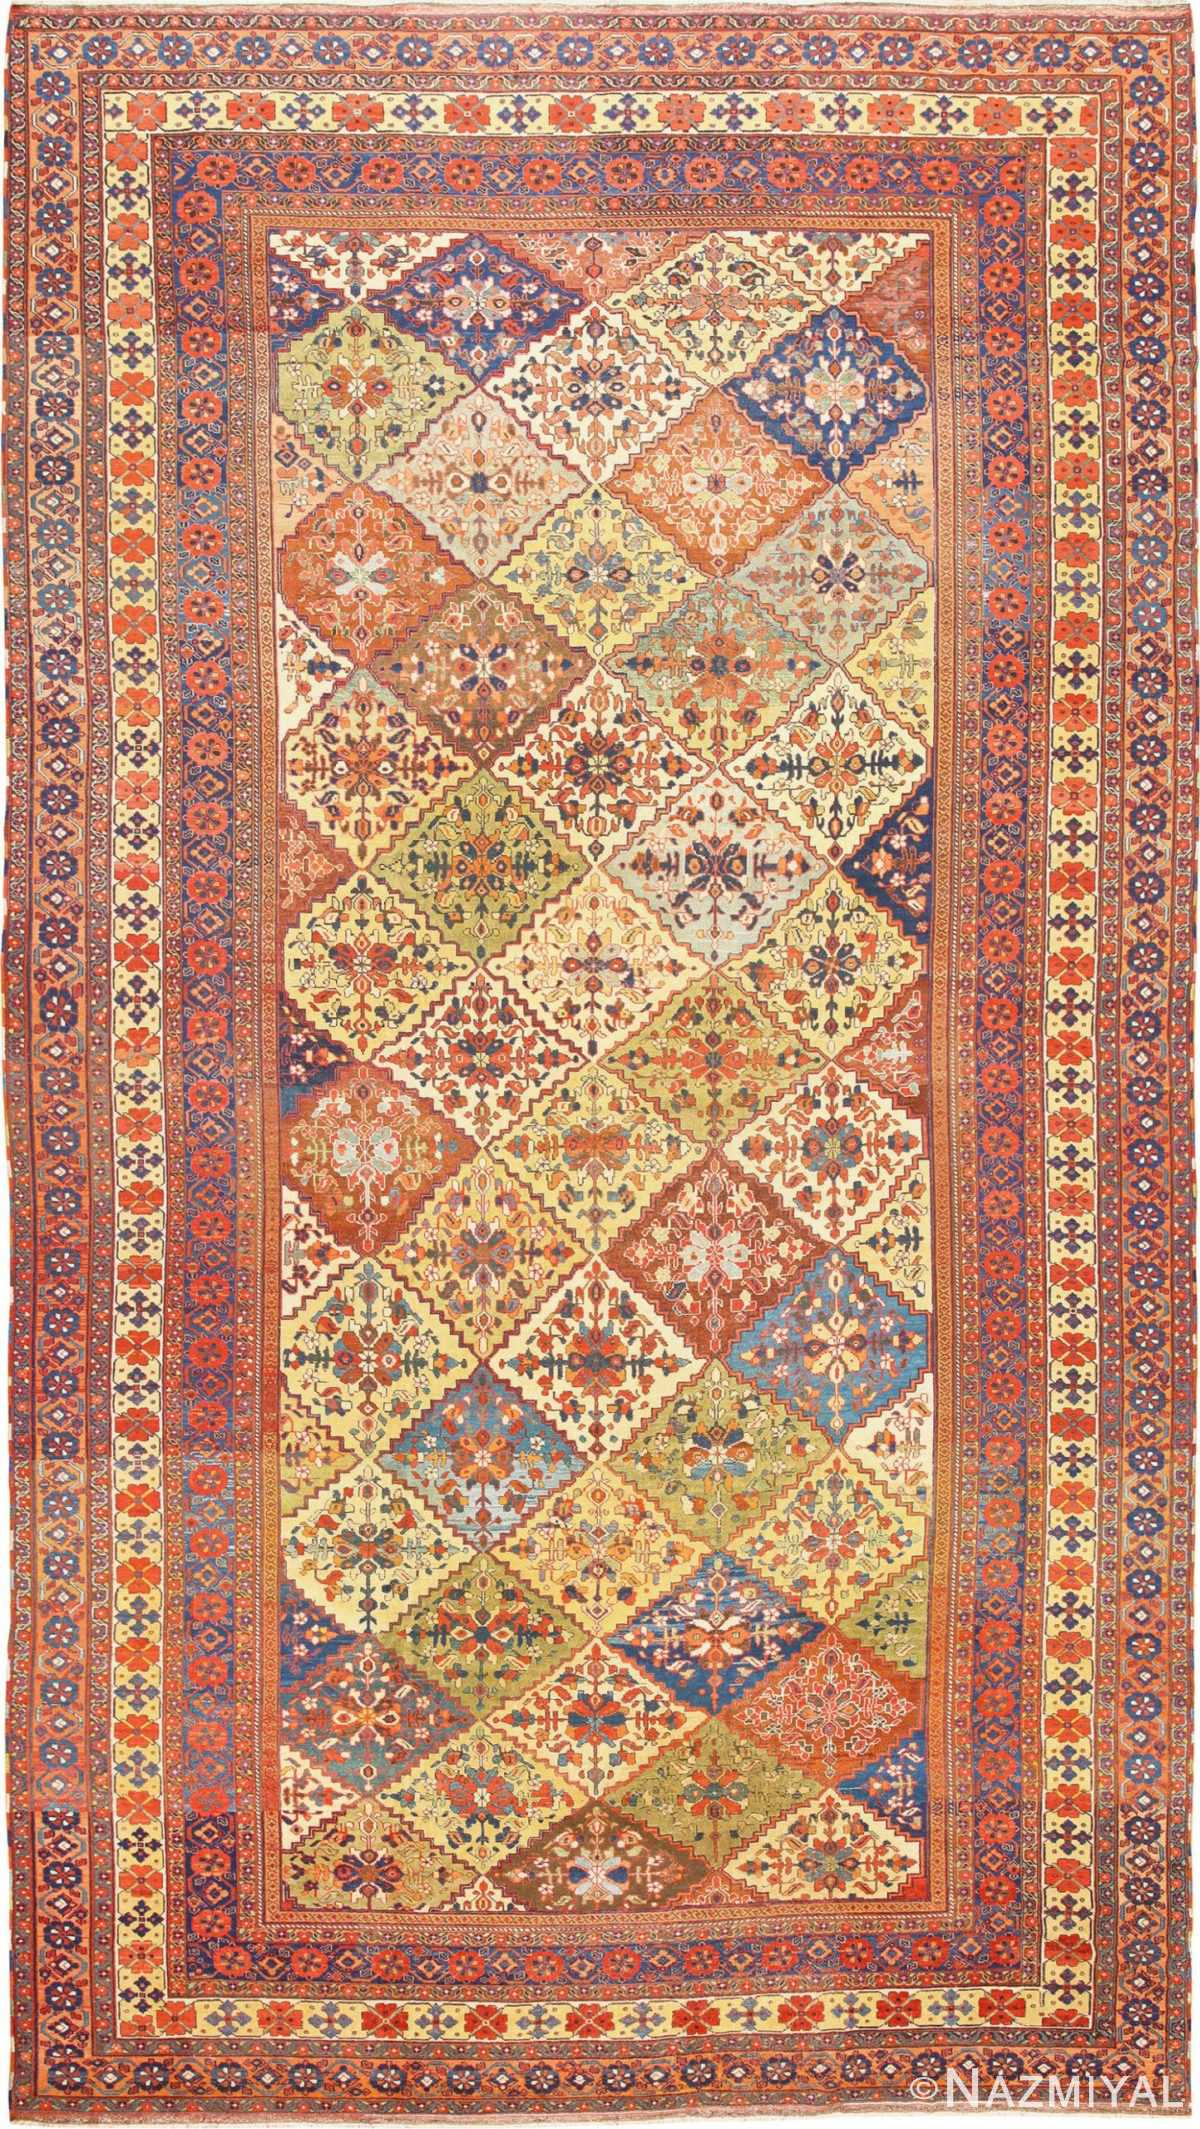 Oversize Tribal Persian Qashqai  Antique Rug 50619 Nazmiyal